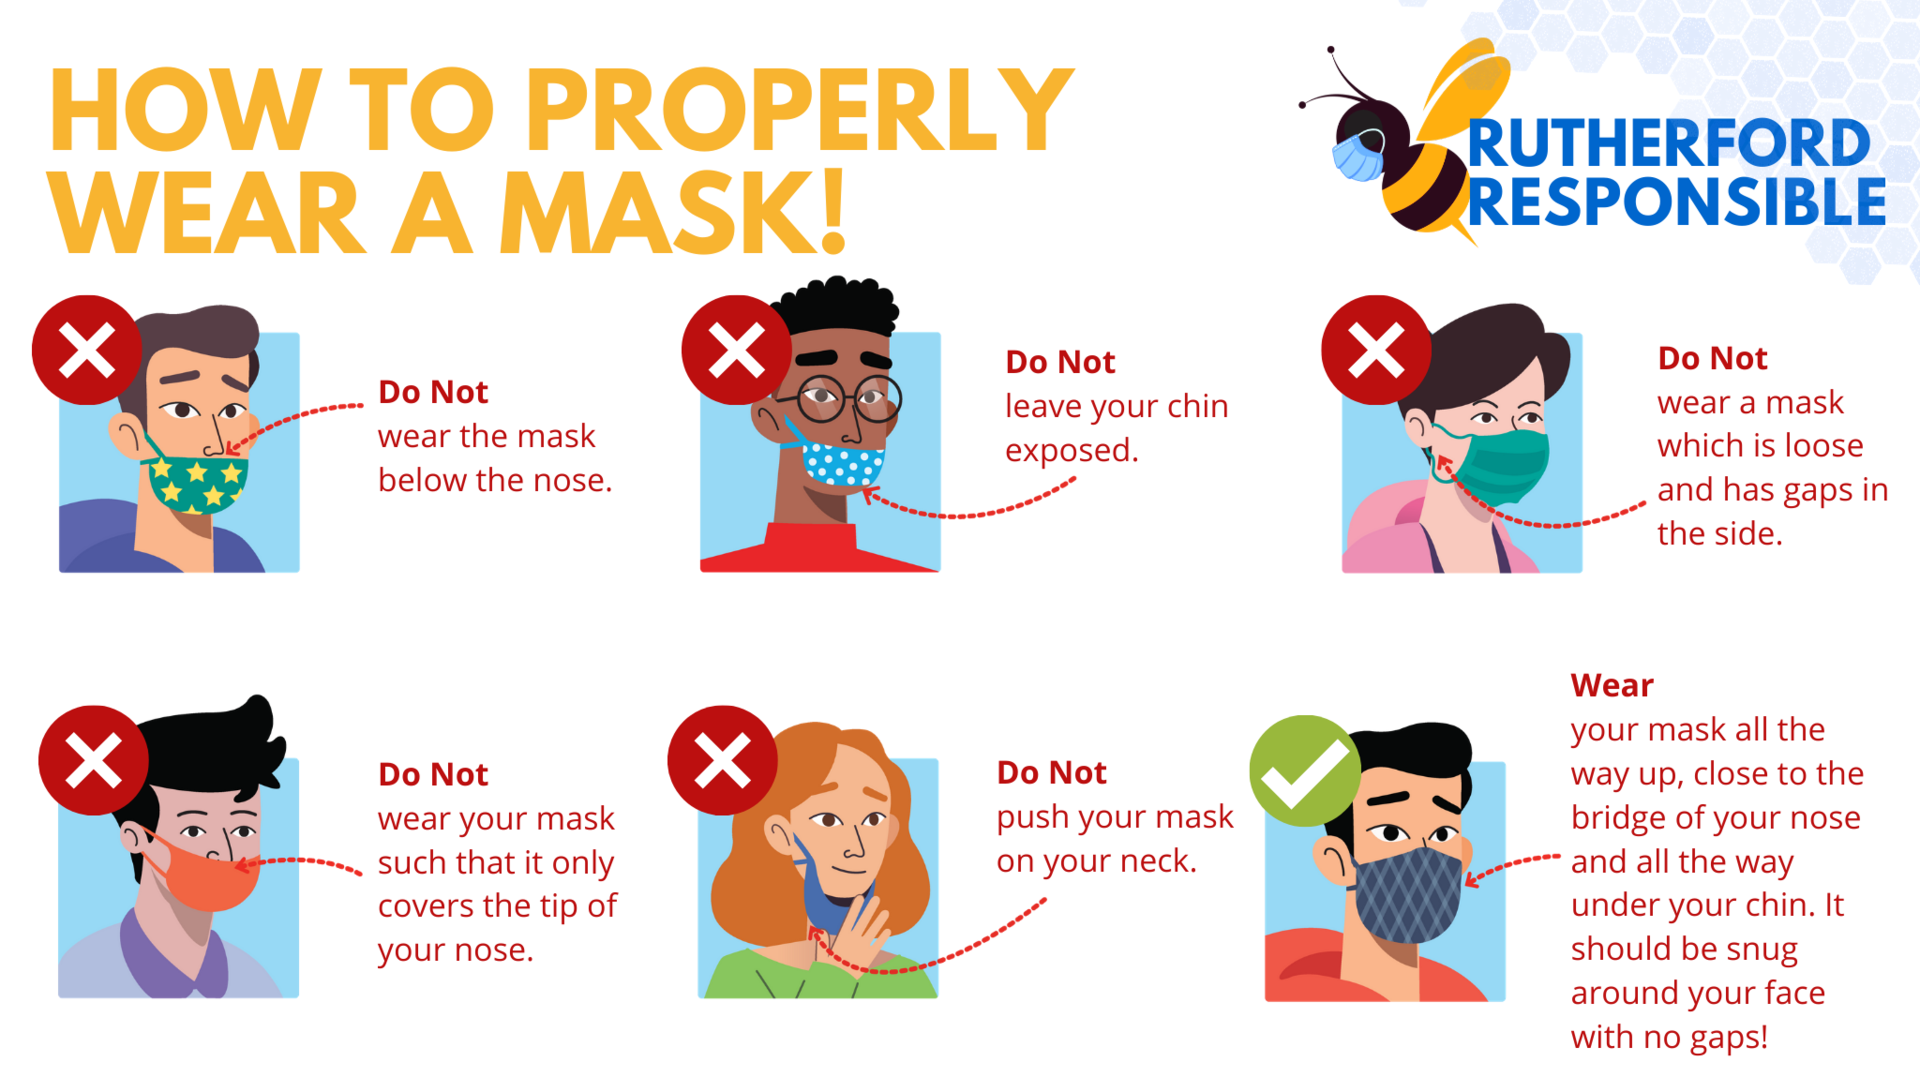 Wear a mask properly to protect you and those around you.